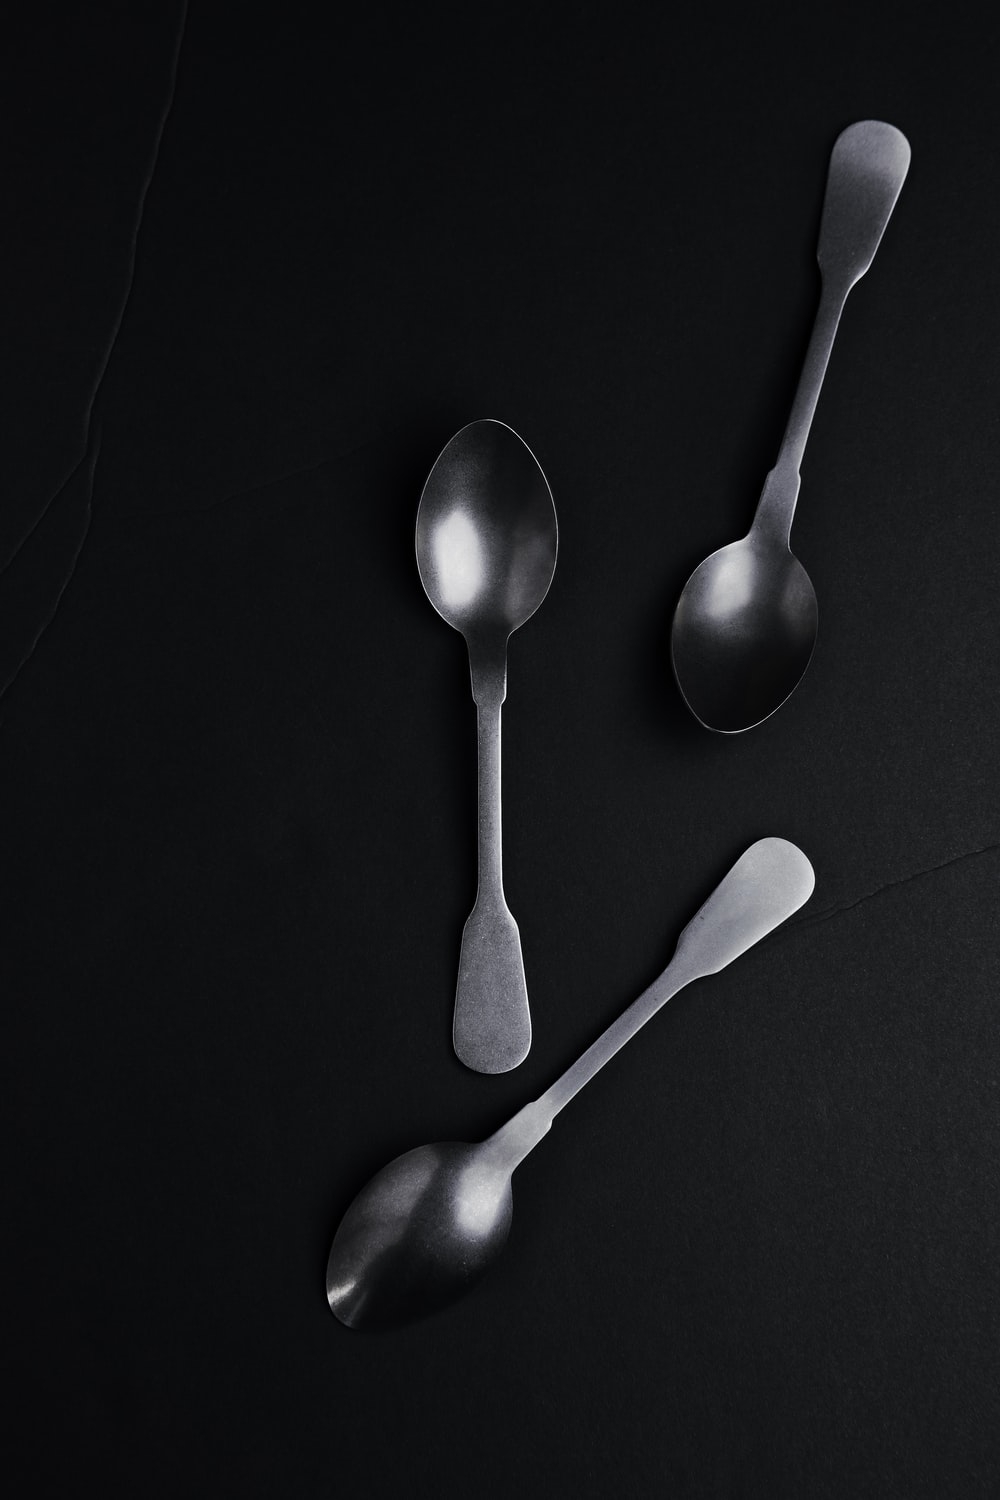 silver spoon on black surface